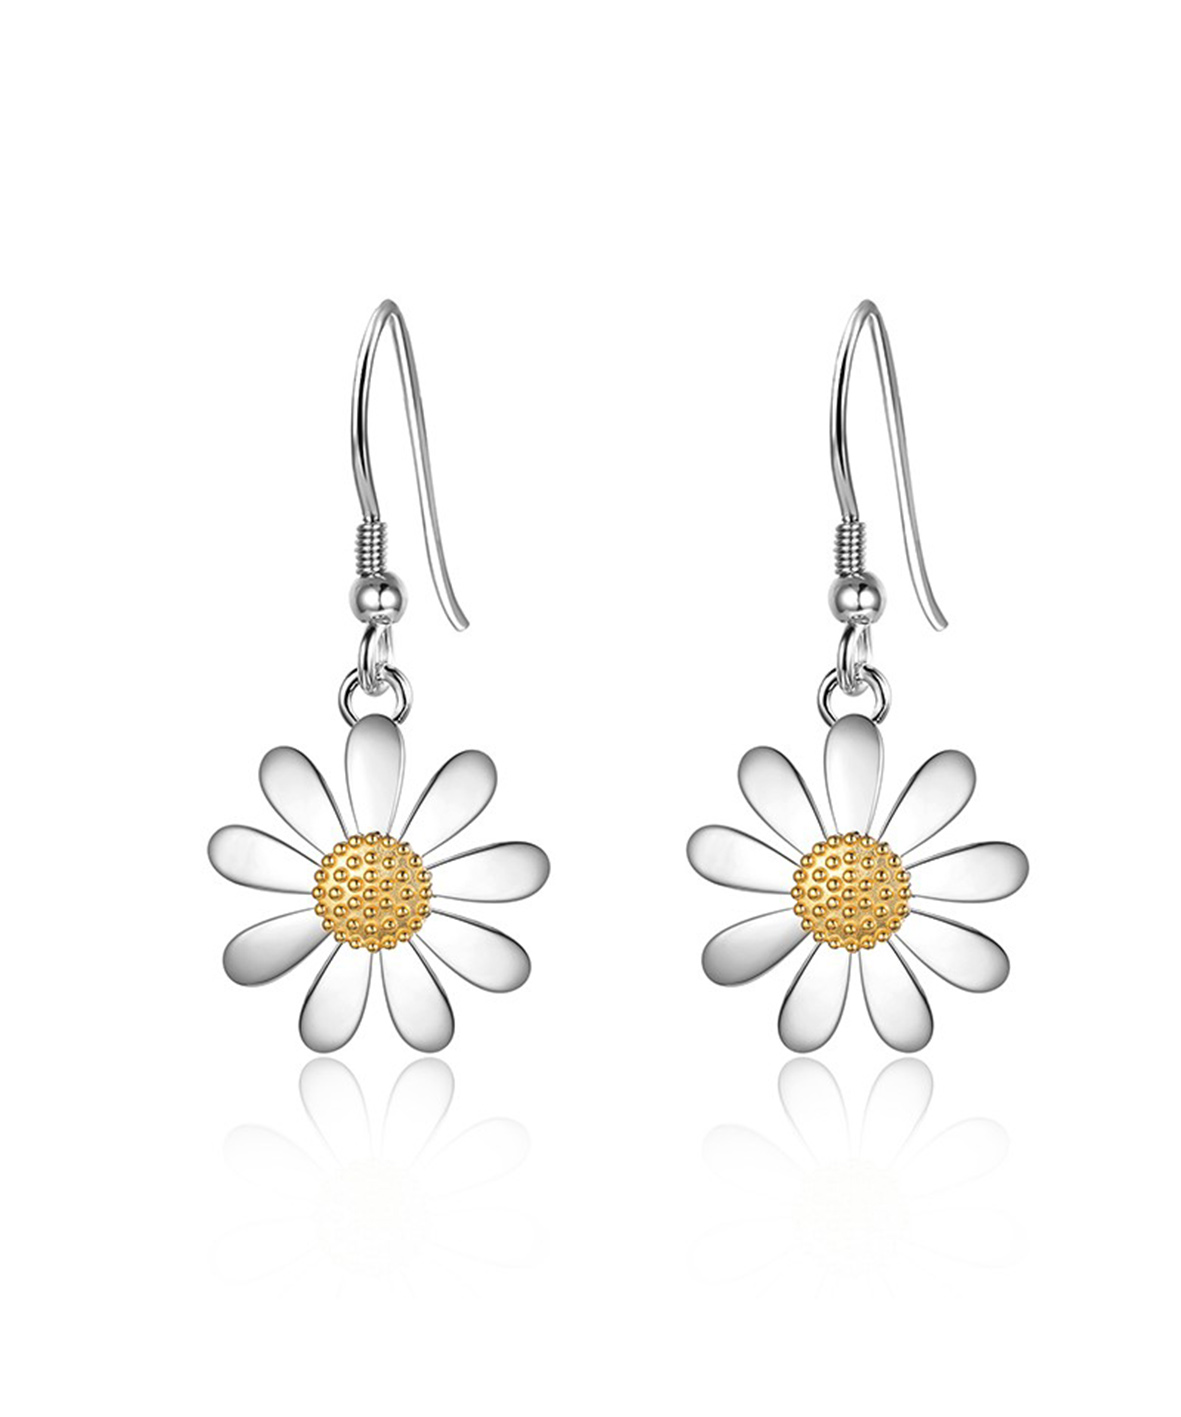 14mm Daisy Drop Earrings